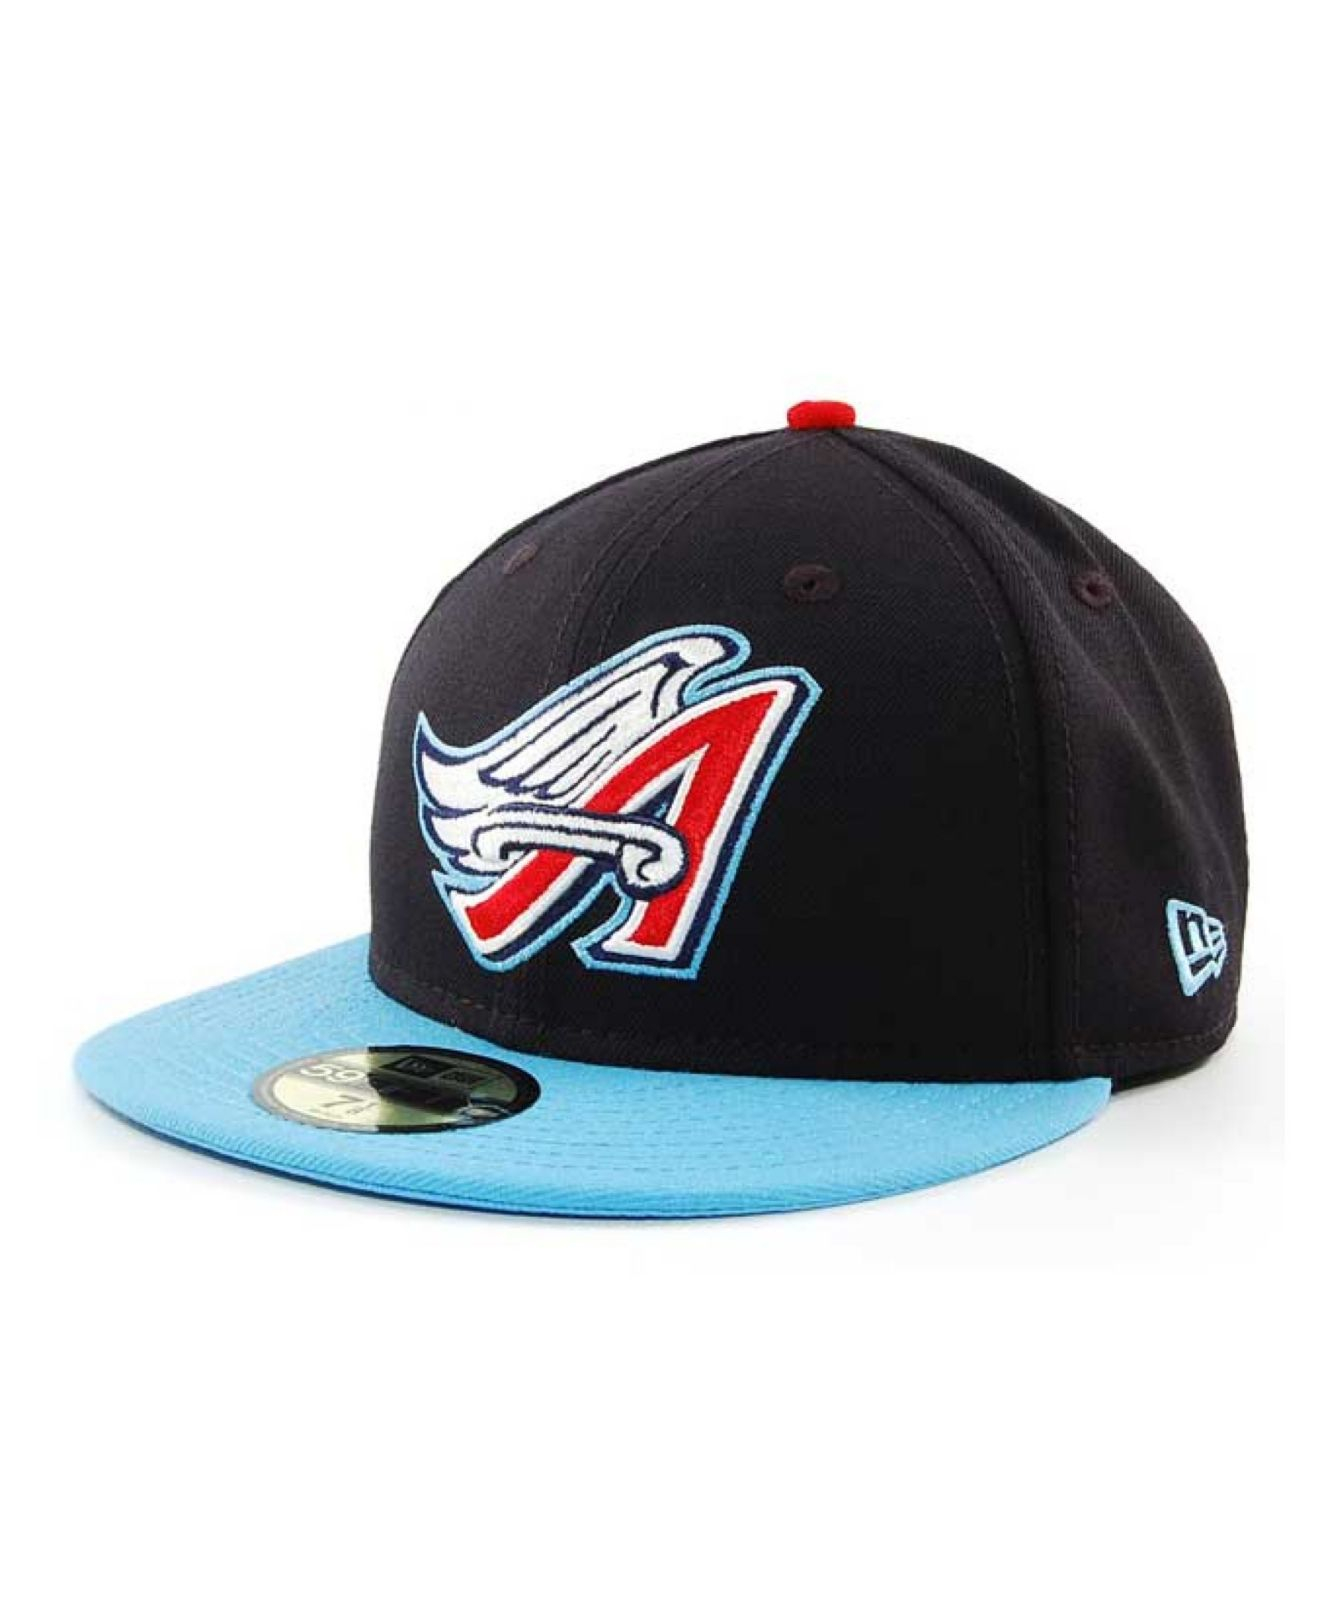 uk availability db80e 5738f cheapest los angeles angels throwback hat f6861 1771d